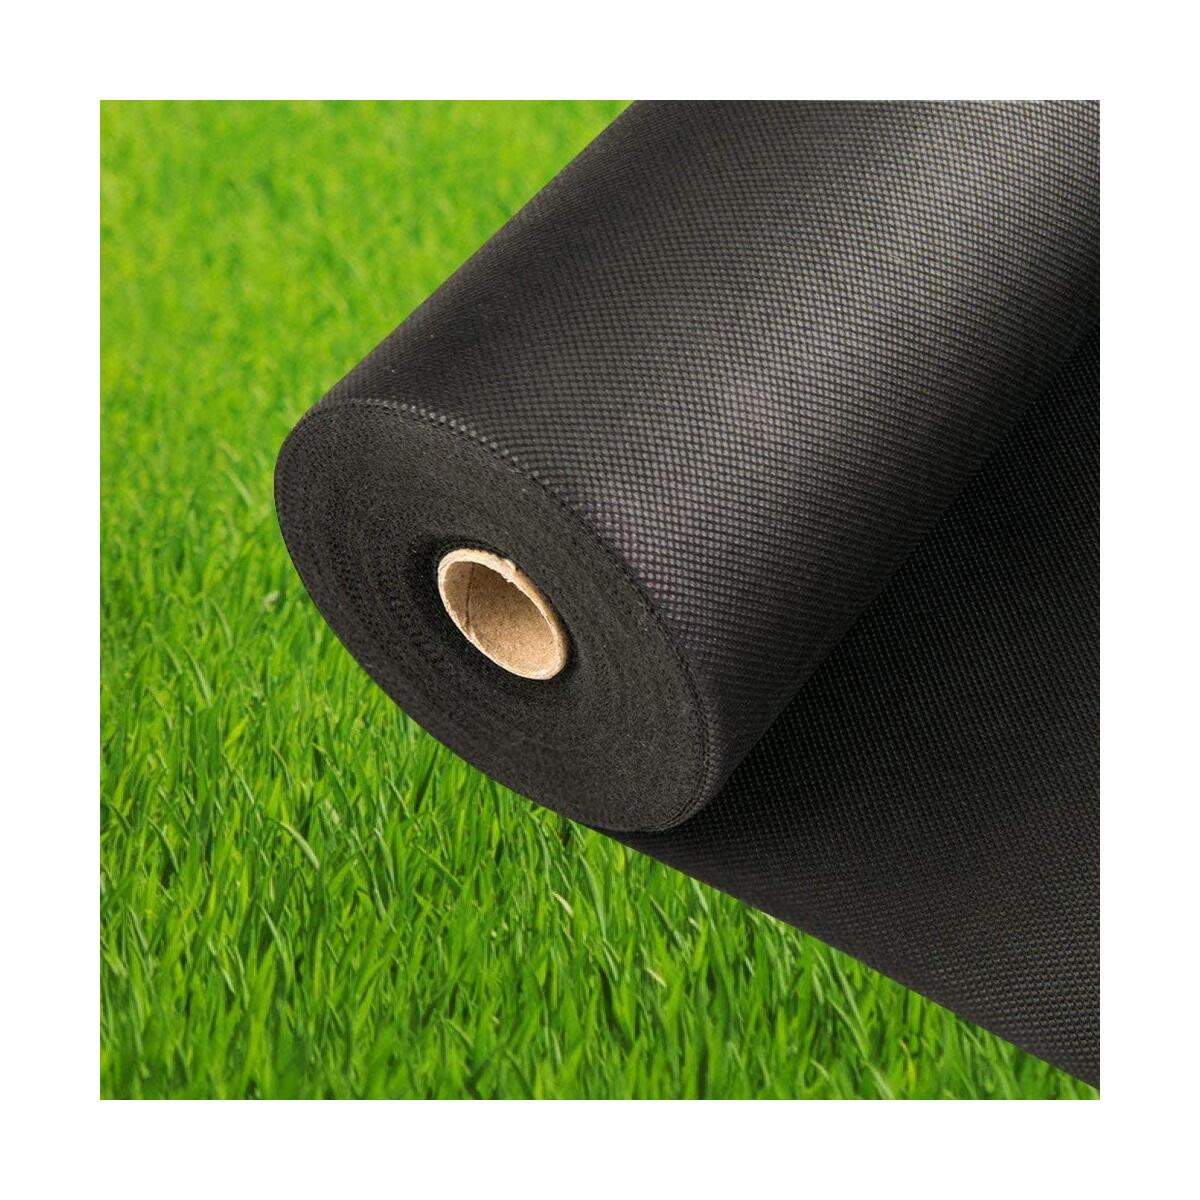 Pro Garden Landscape Fabric Heavy Duty - French Cloth Ground Cover One Roll 4x100 ft 3 oz/100gsm